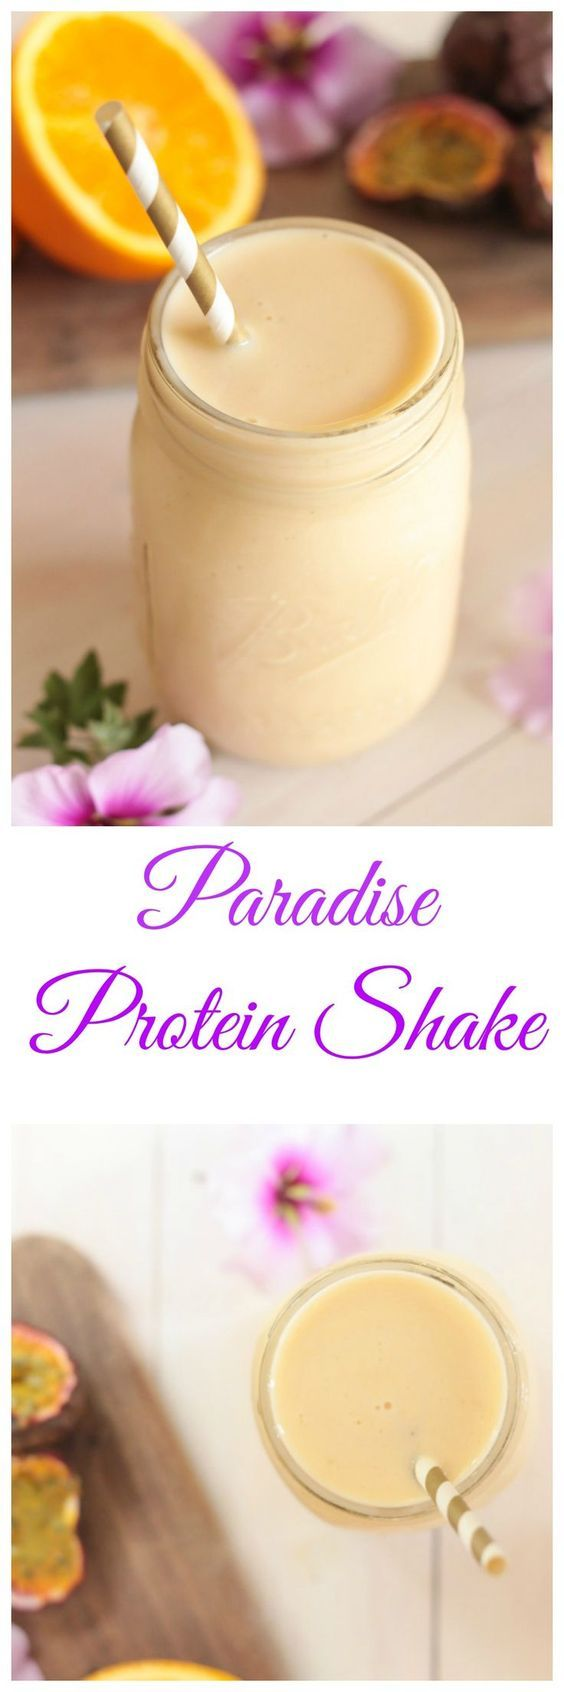 Try a yummy, tropical Paradise Protein Shake!